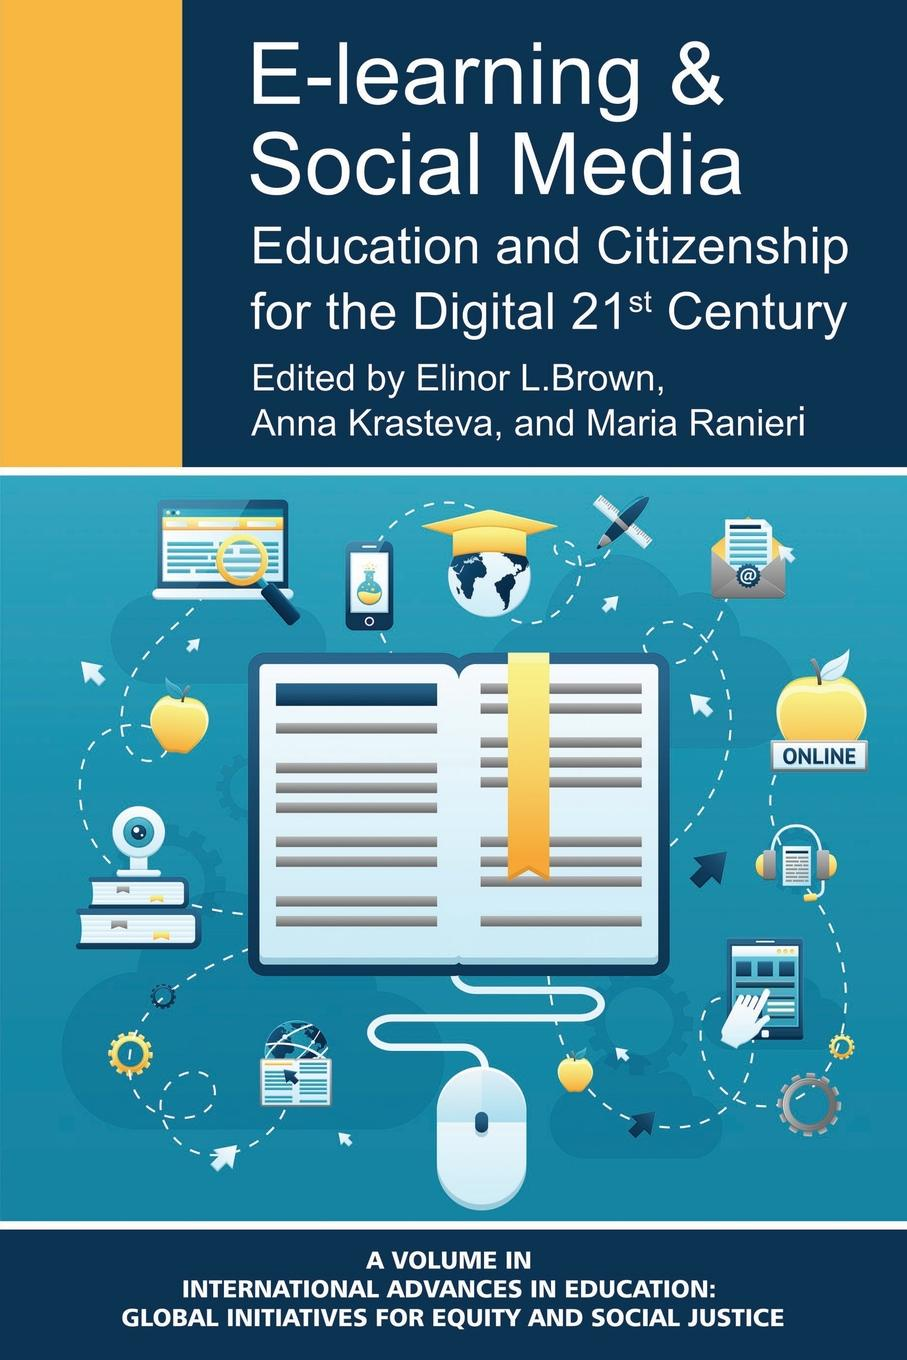 E-Learning and Social Media. Education and Citizenship for the Digital 21st Century bevan s brinkley i bajorek z cooper c 21st century workforces and workplaces the challenges and opportunities for future work practices and labour markets